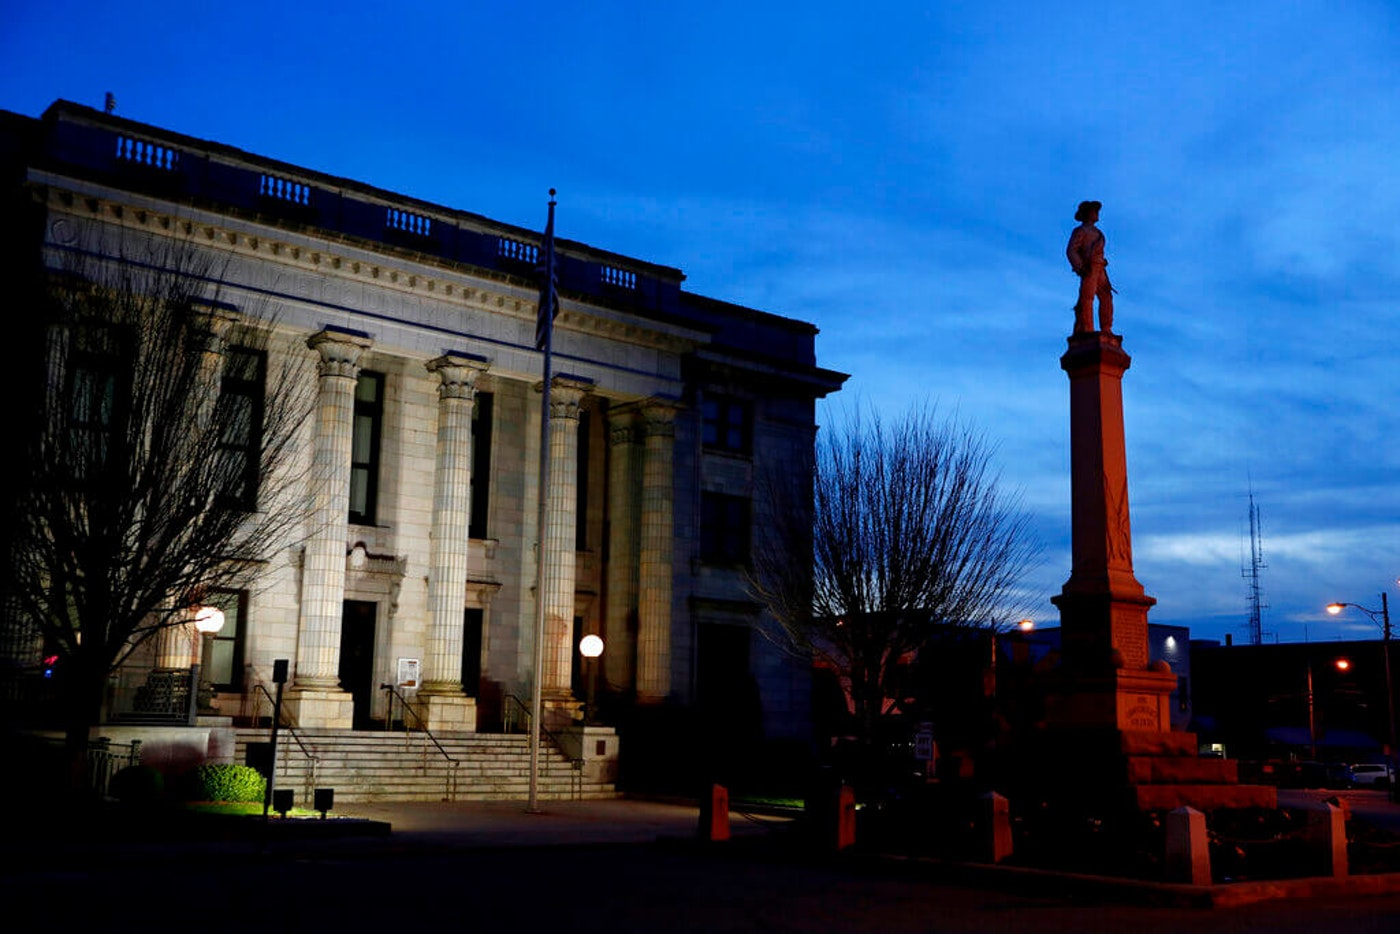 A monument to Confederate soldiers is seen in front of the Alamance County Courthouse in Graham, NC, in 2020. (Image via AP Photo/Jacquelyn Martin, File)